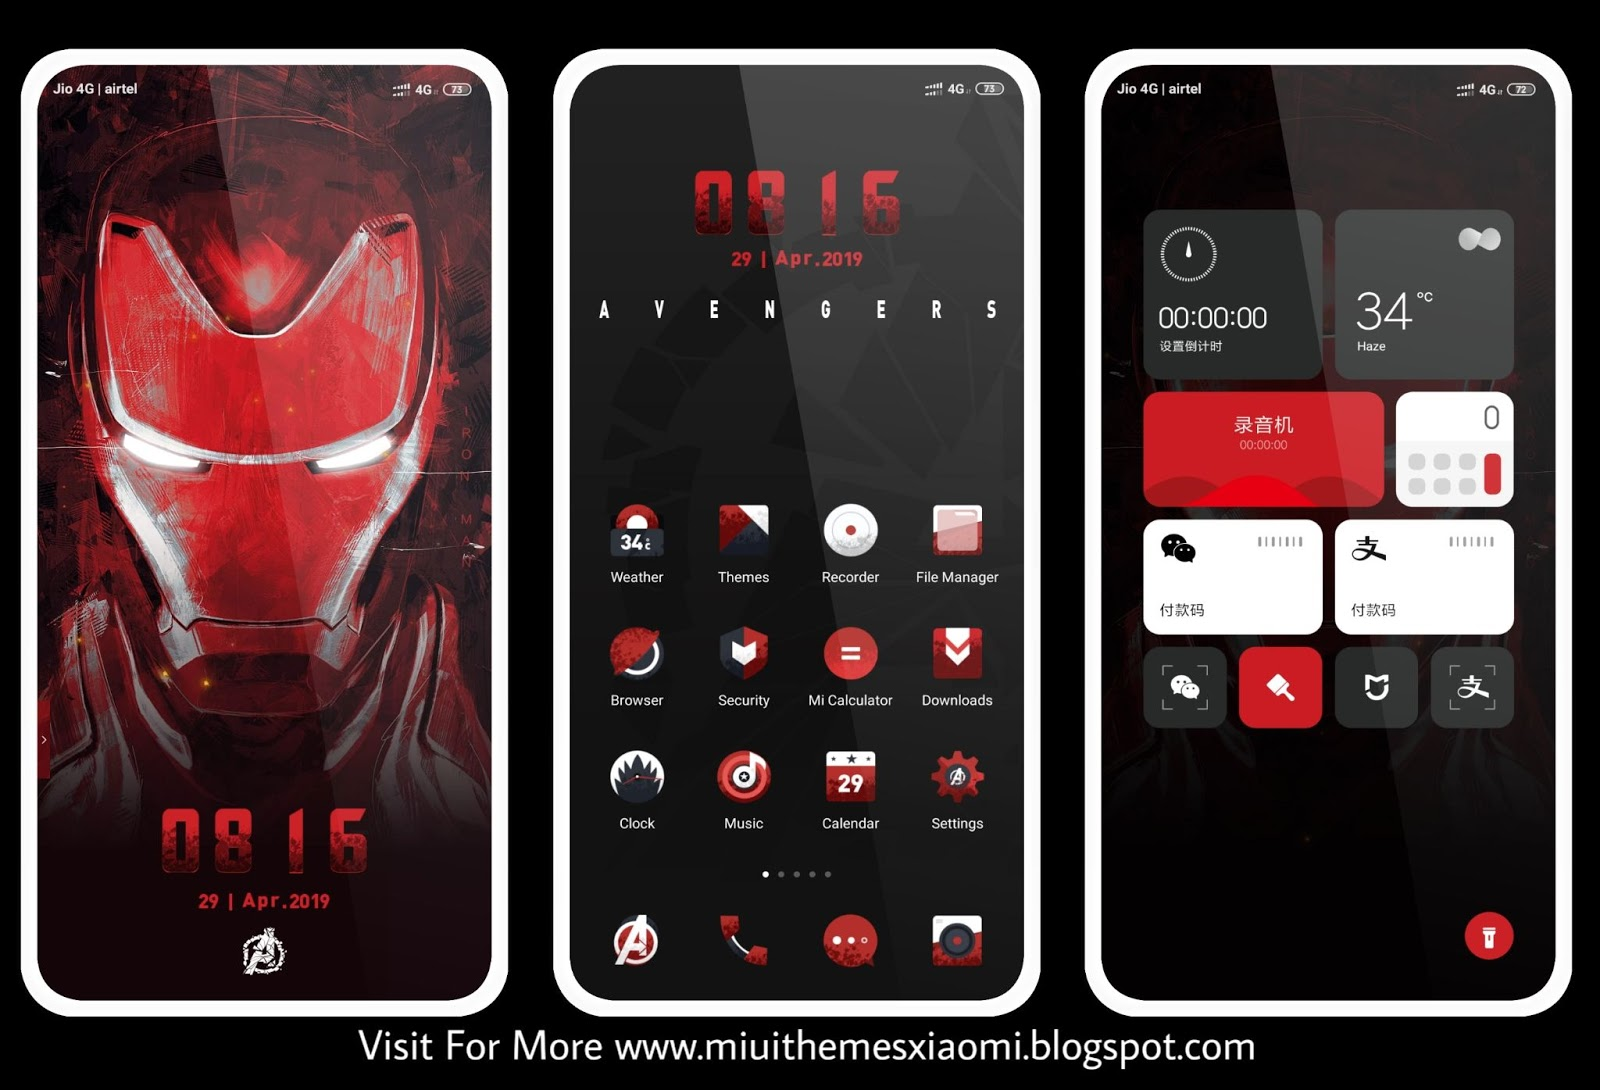 Avengers: Endgame MIUI Theme Download For Xiaomi Mobile || MIUI